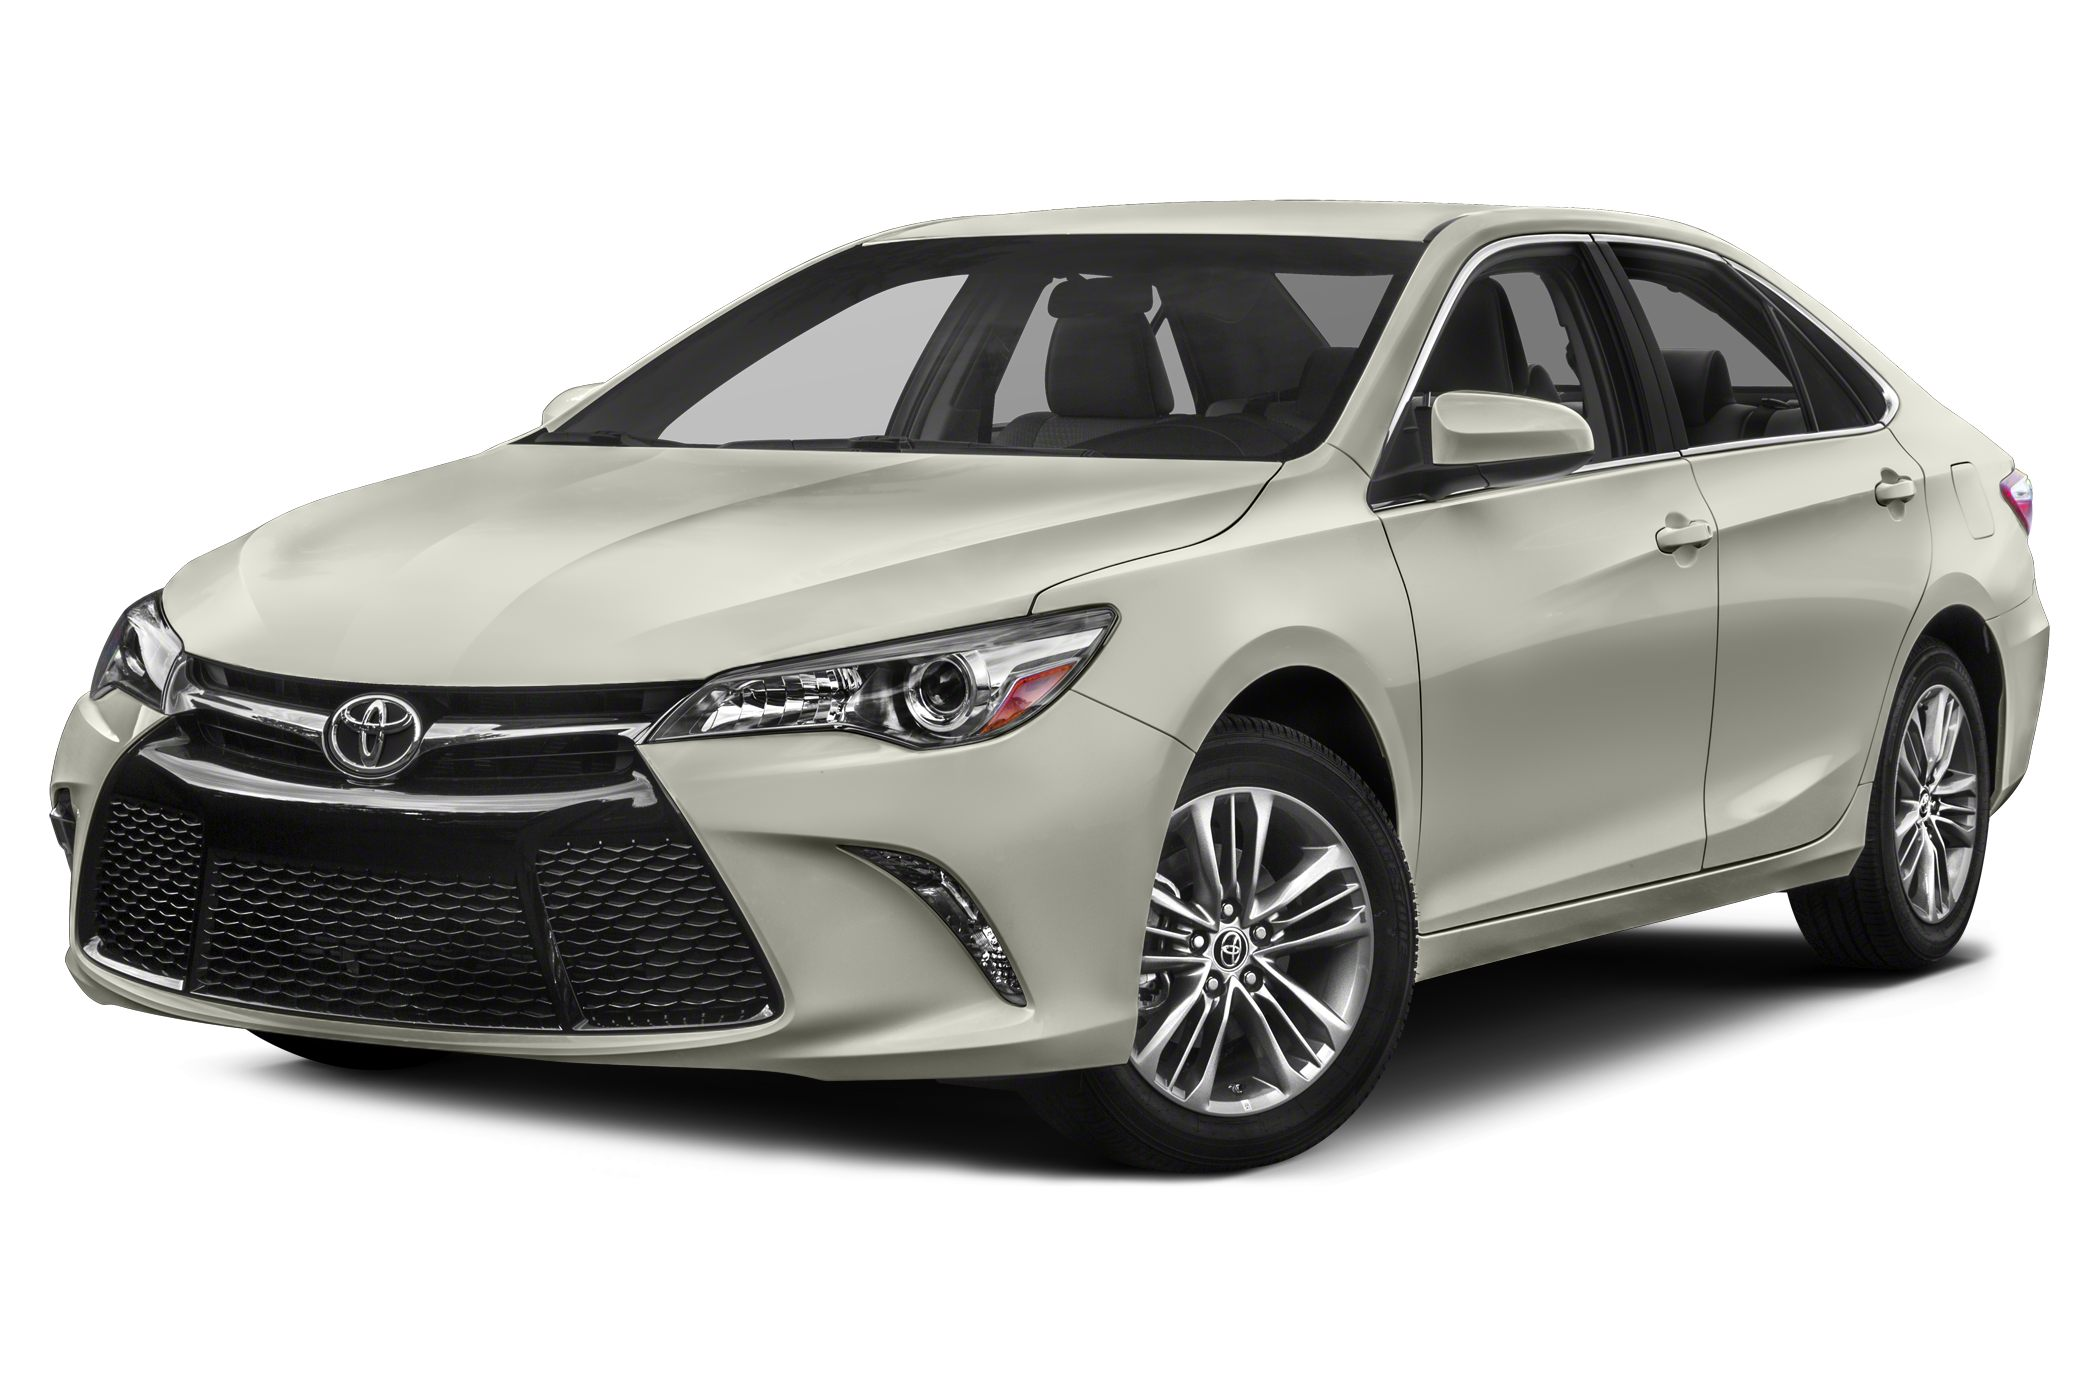 all new camry specs grand veloz vs mobilio 2017 toyota xse 4dr sedan and prices